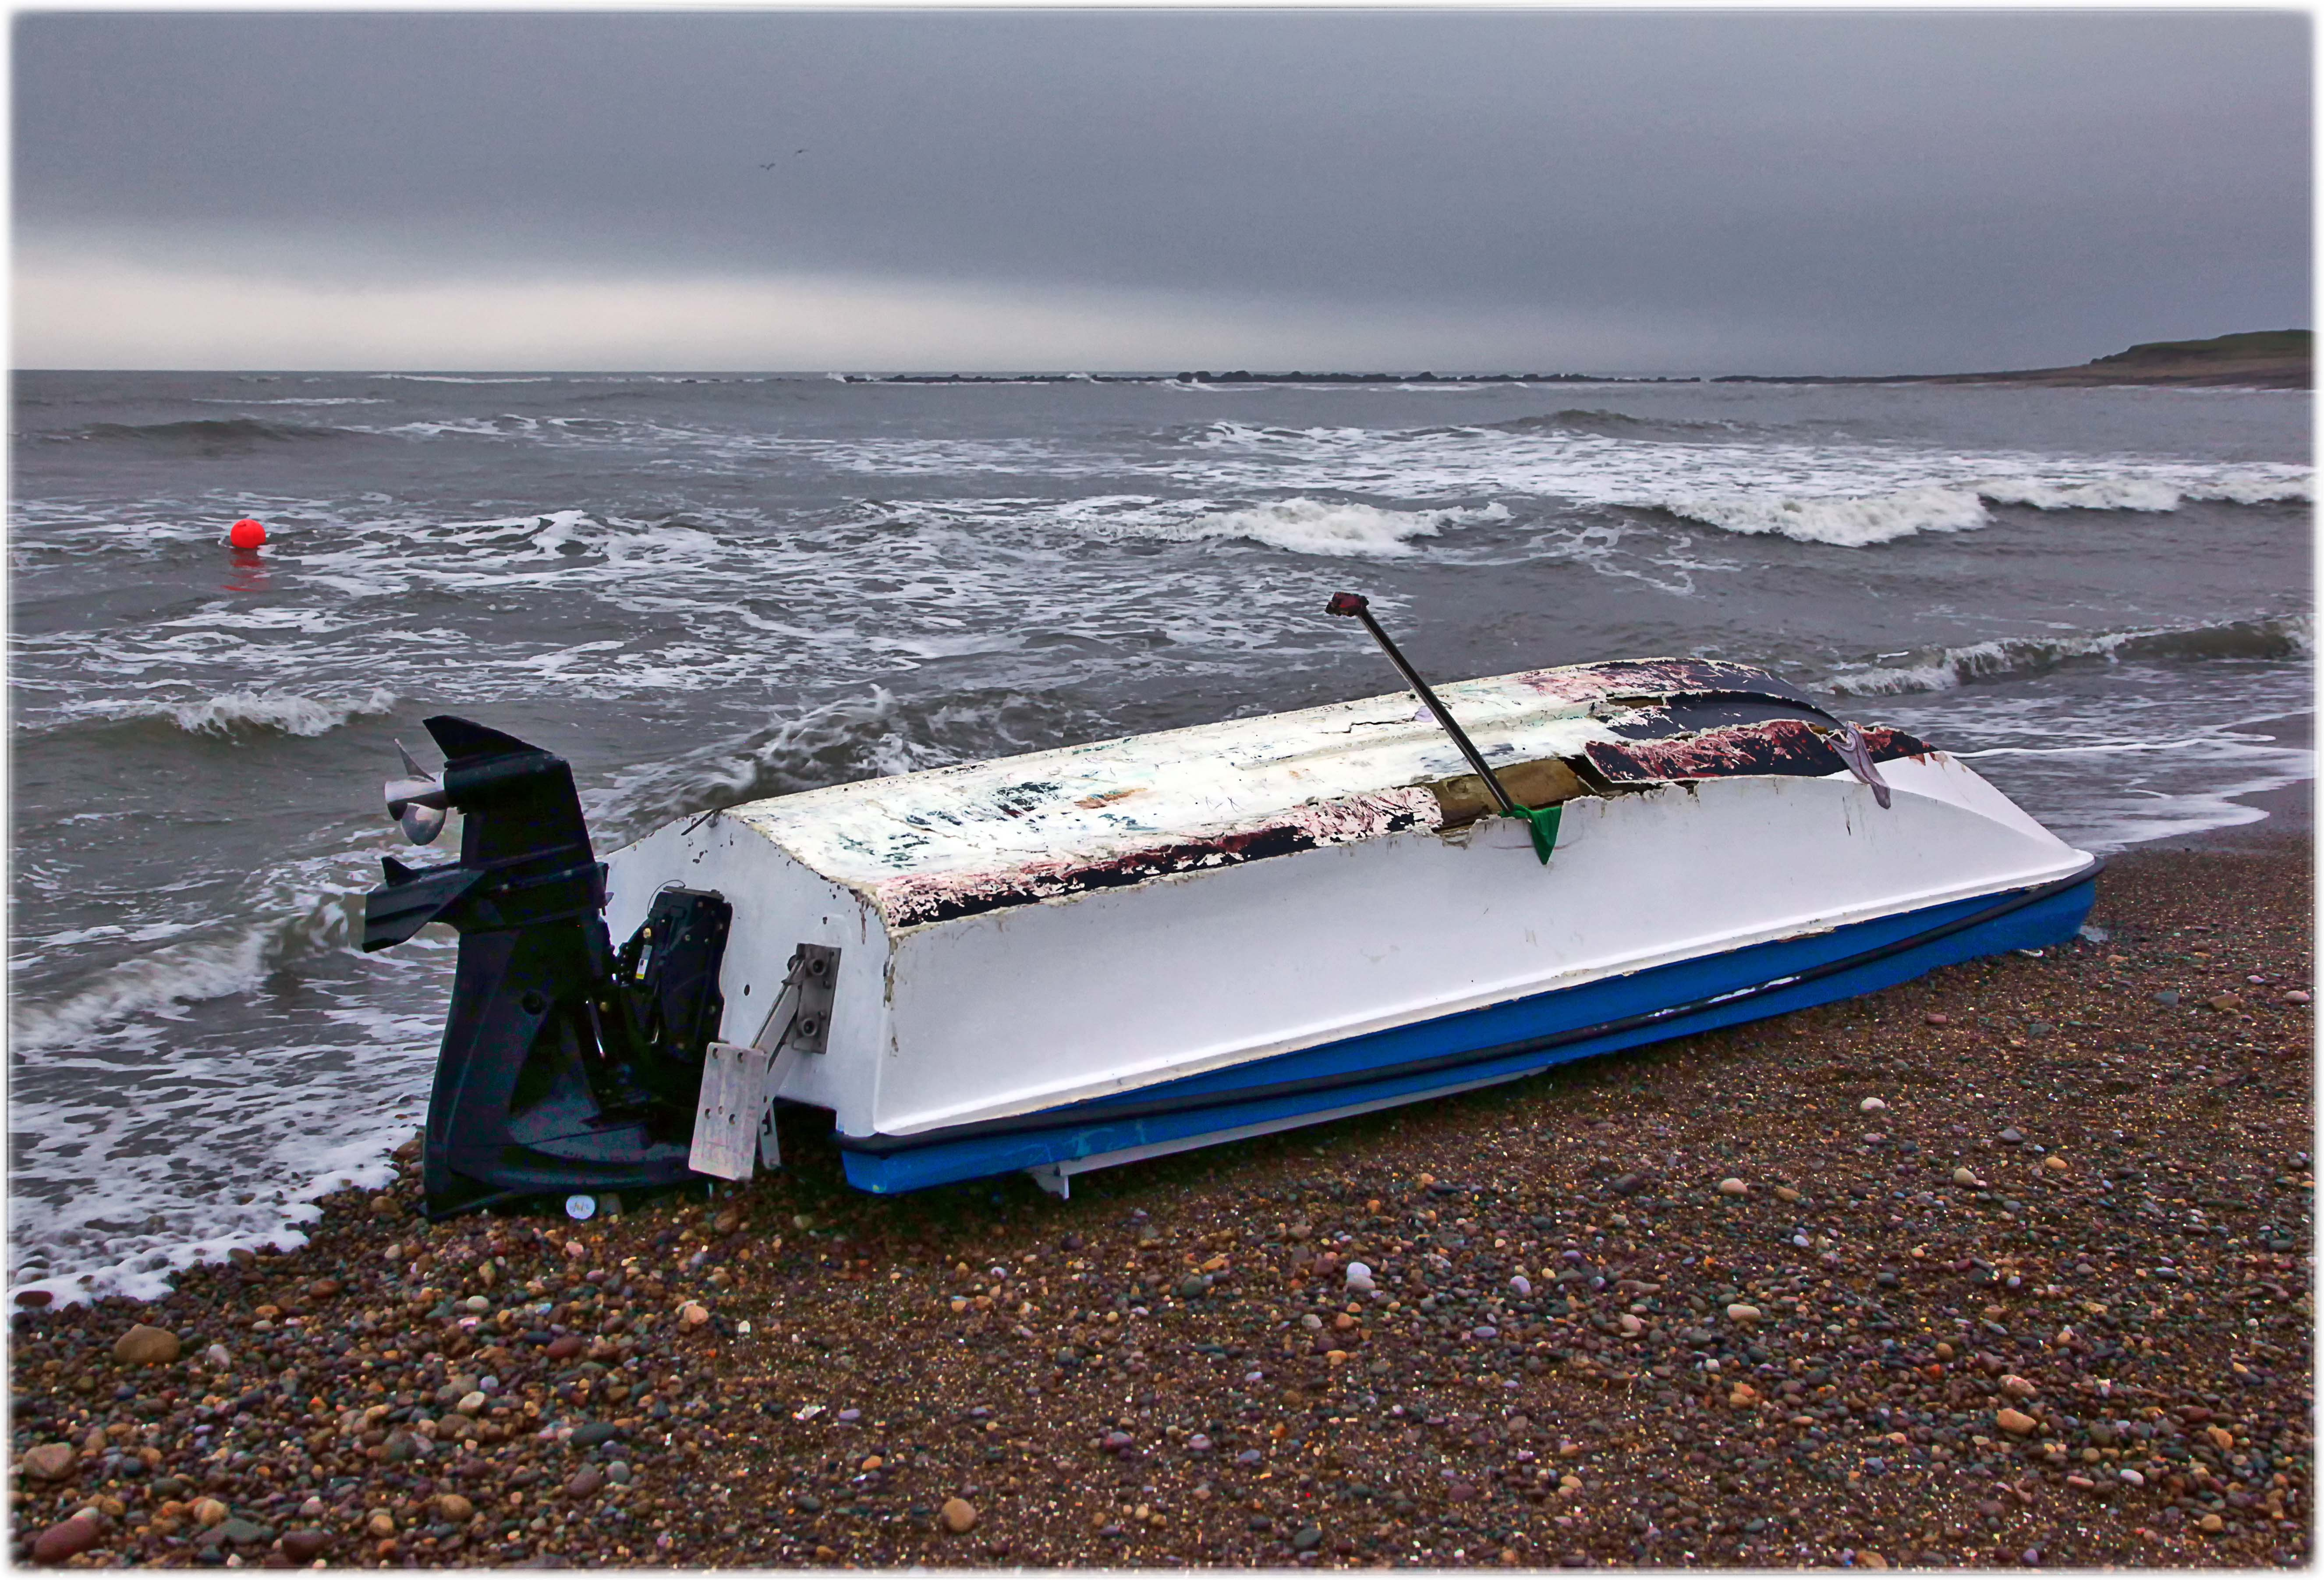 The casualty vessel the following morning at Sker Point